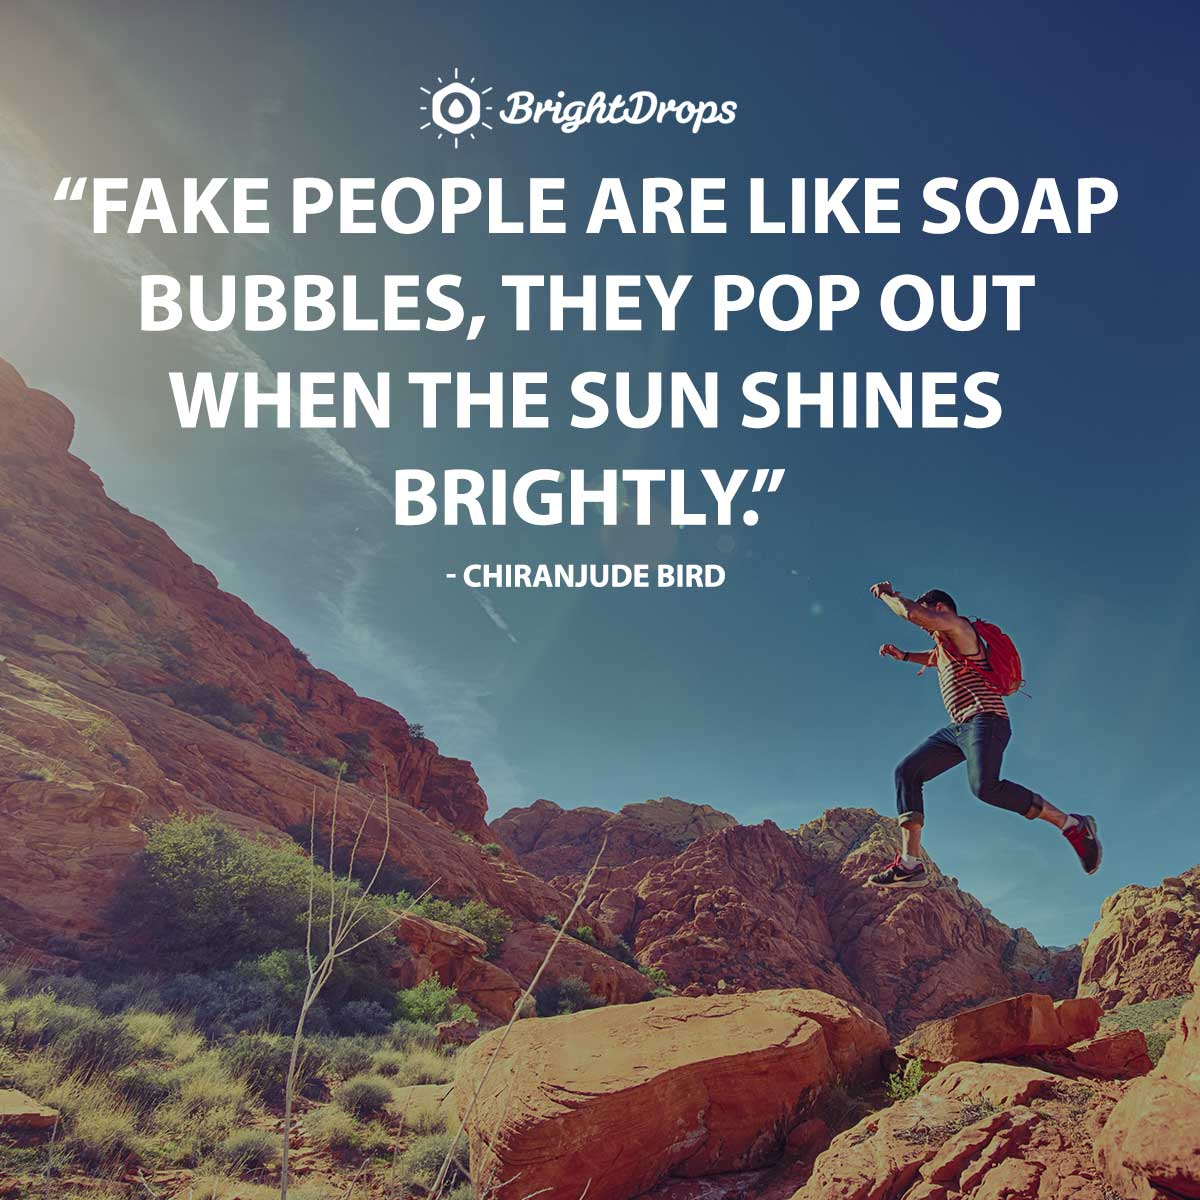 Fake people are like soap bubbles, they pop out when the sun shines brightly. - Chiranjude Bird